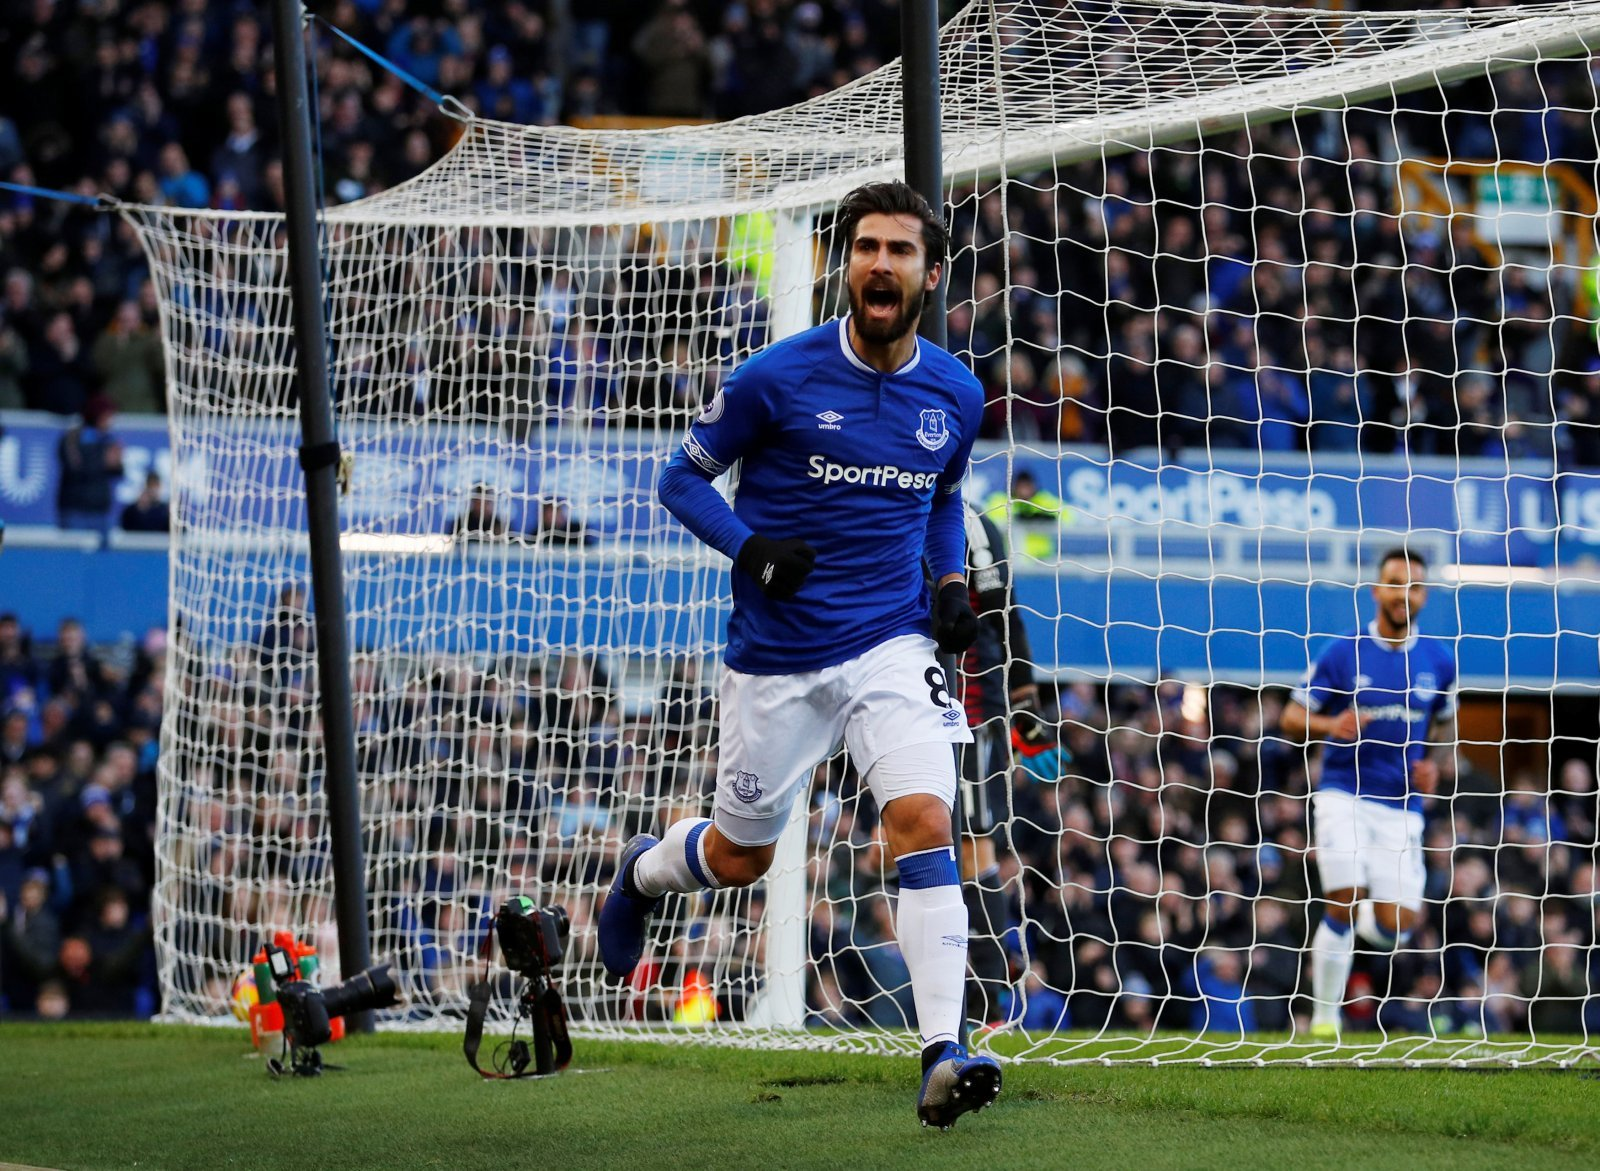 Everton: Fans flood Andre Gomes Instagram post amid sideline spell